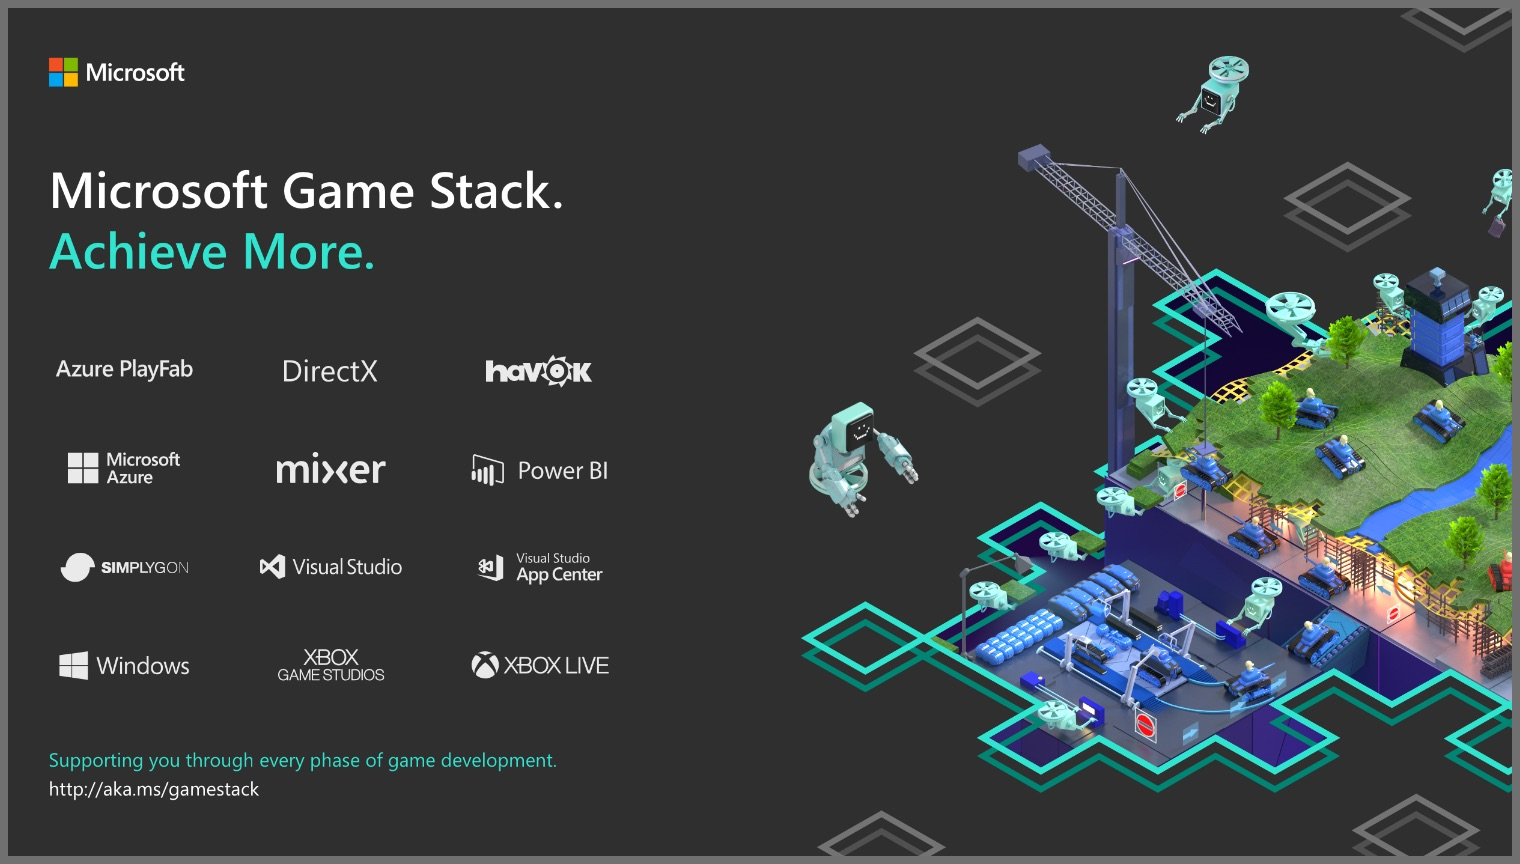 Game Stack - Achieve More With Microsoft Game Stack |  Microsoft Developer